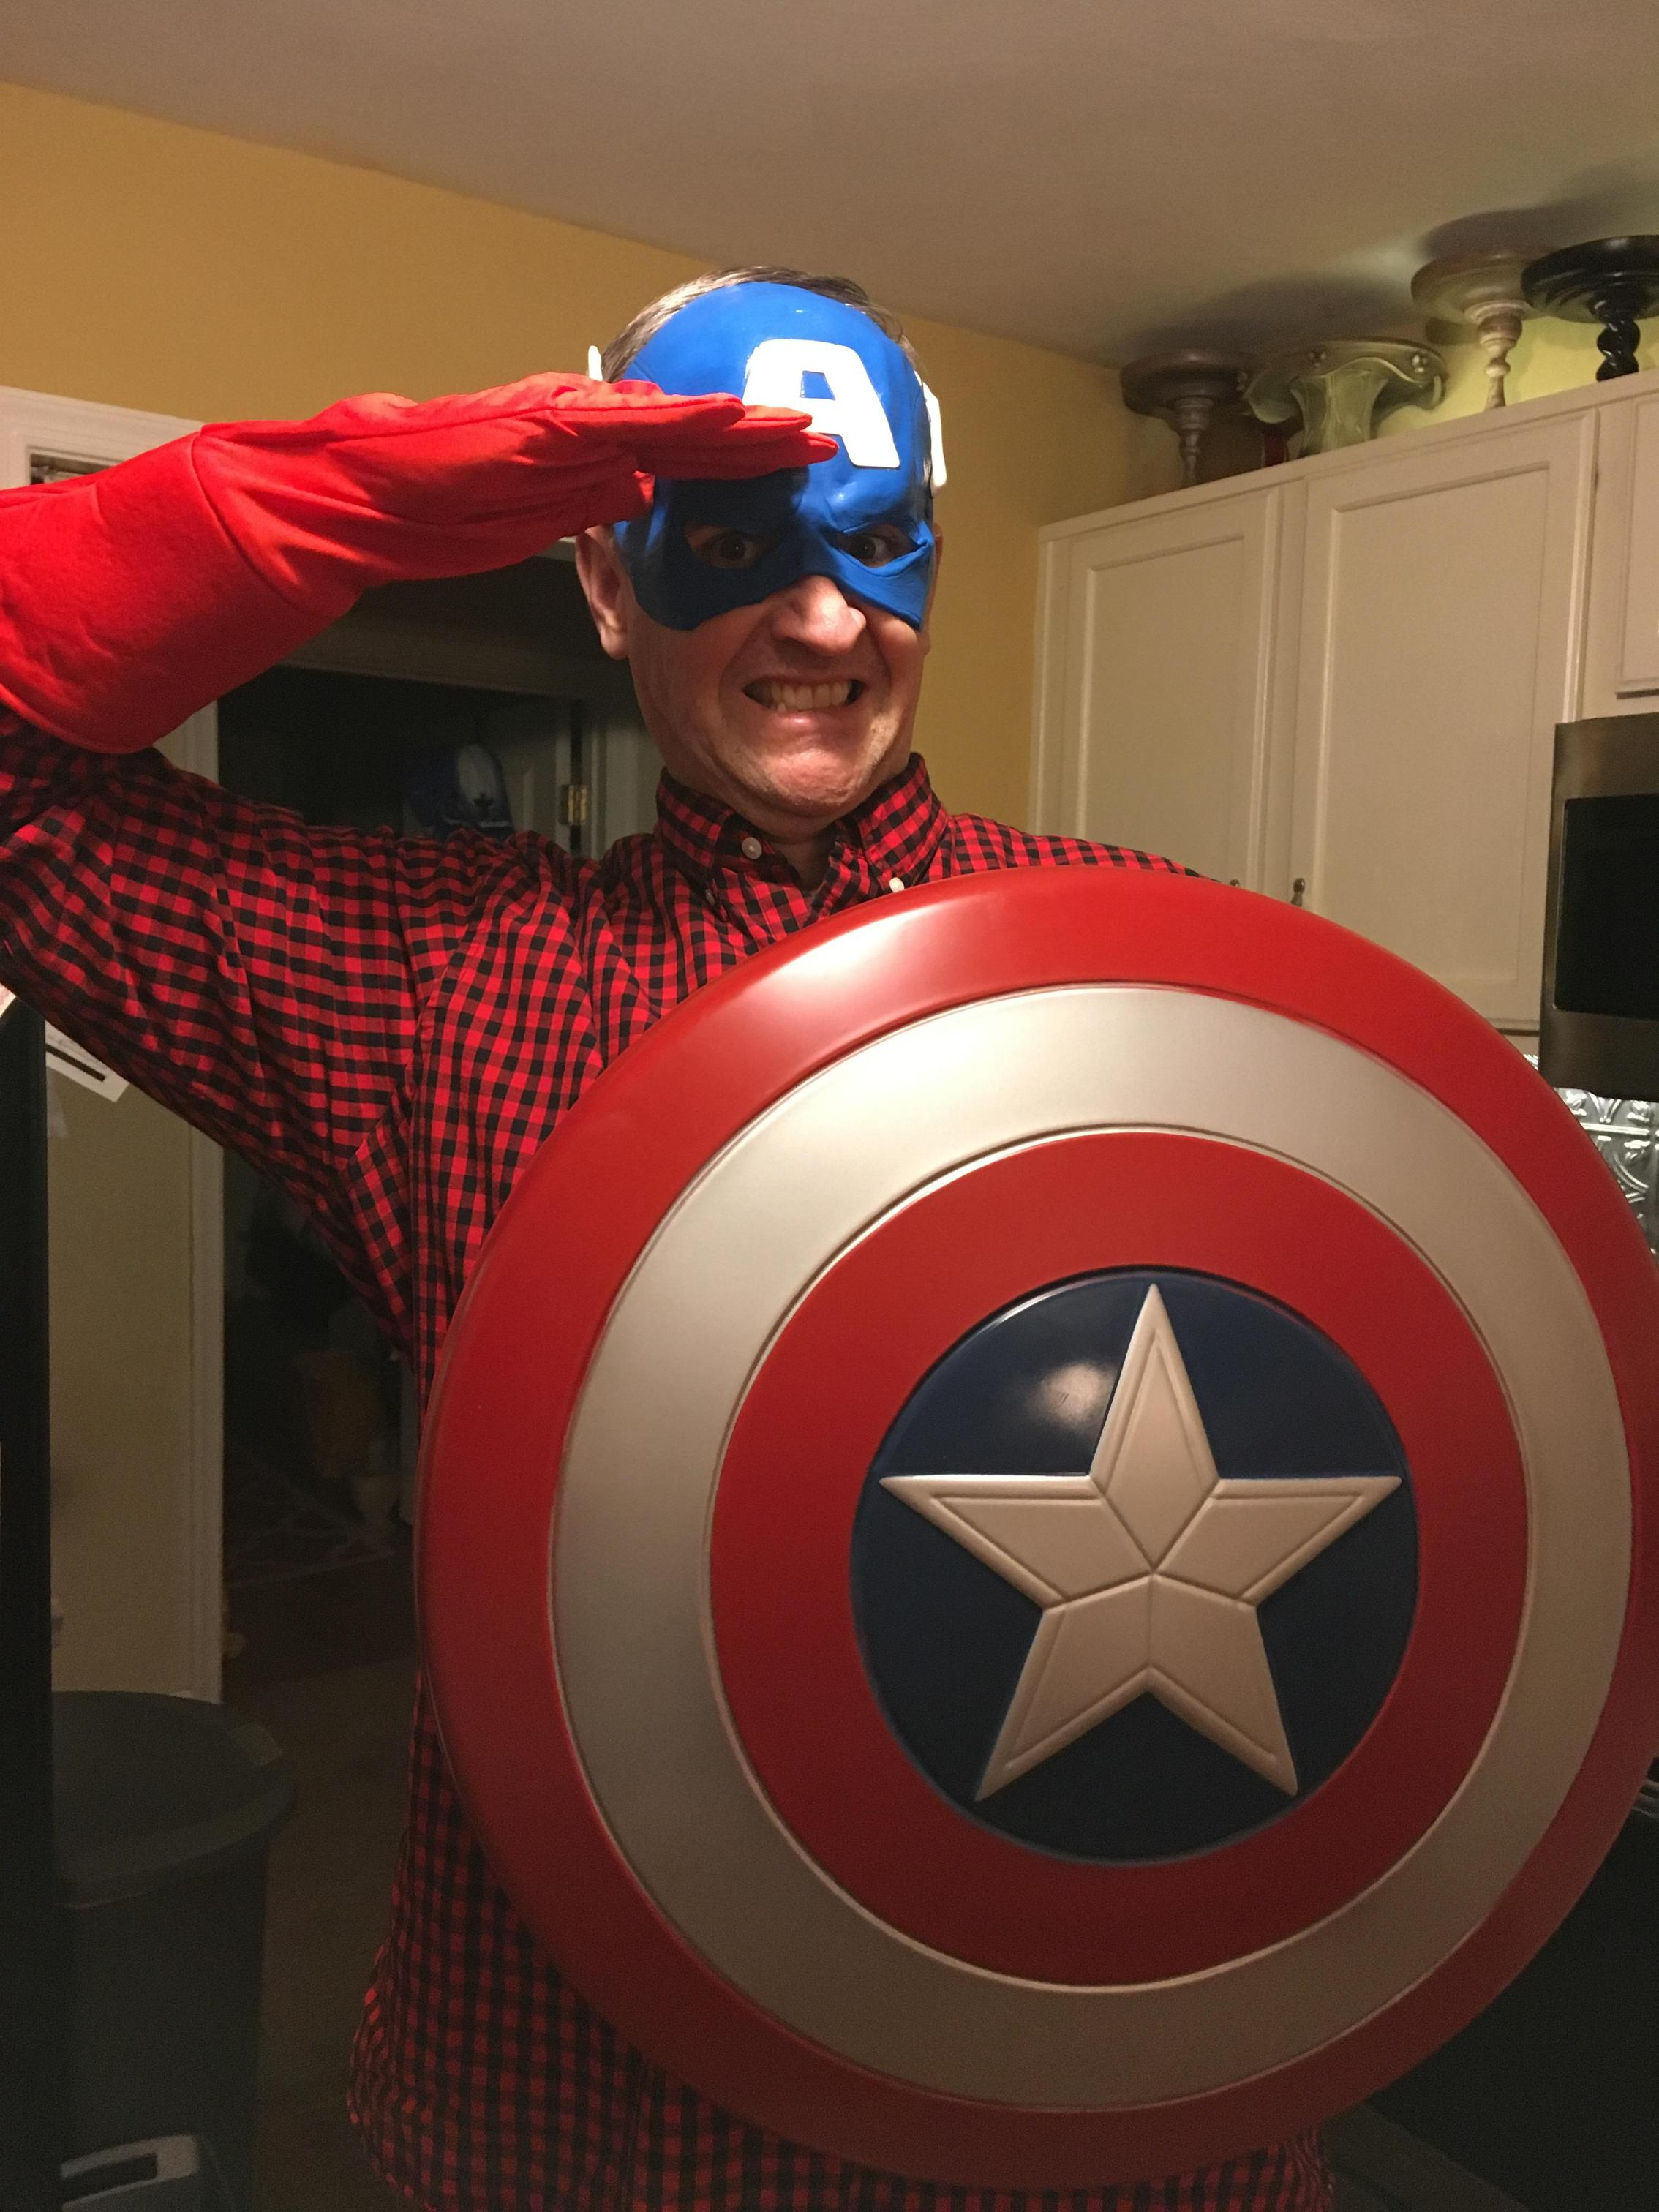 mr. brennan dressed as captain america